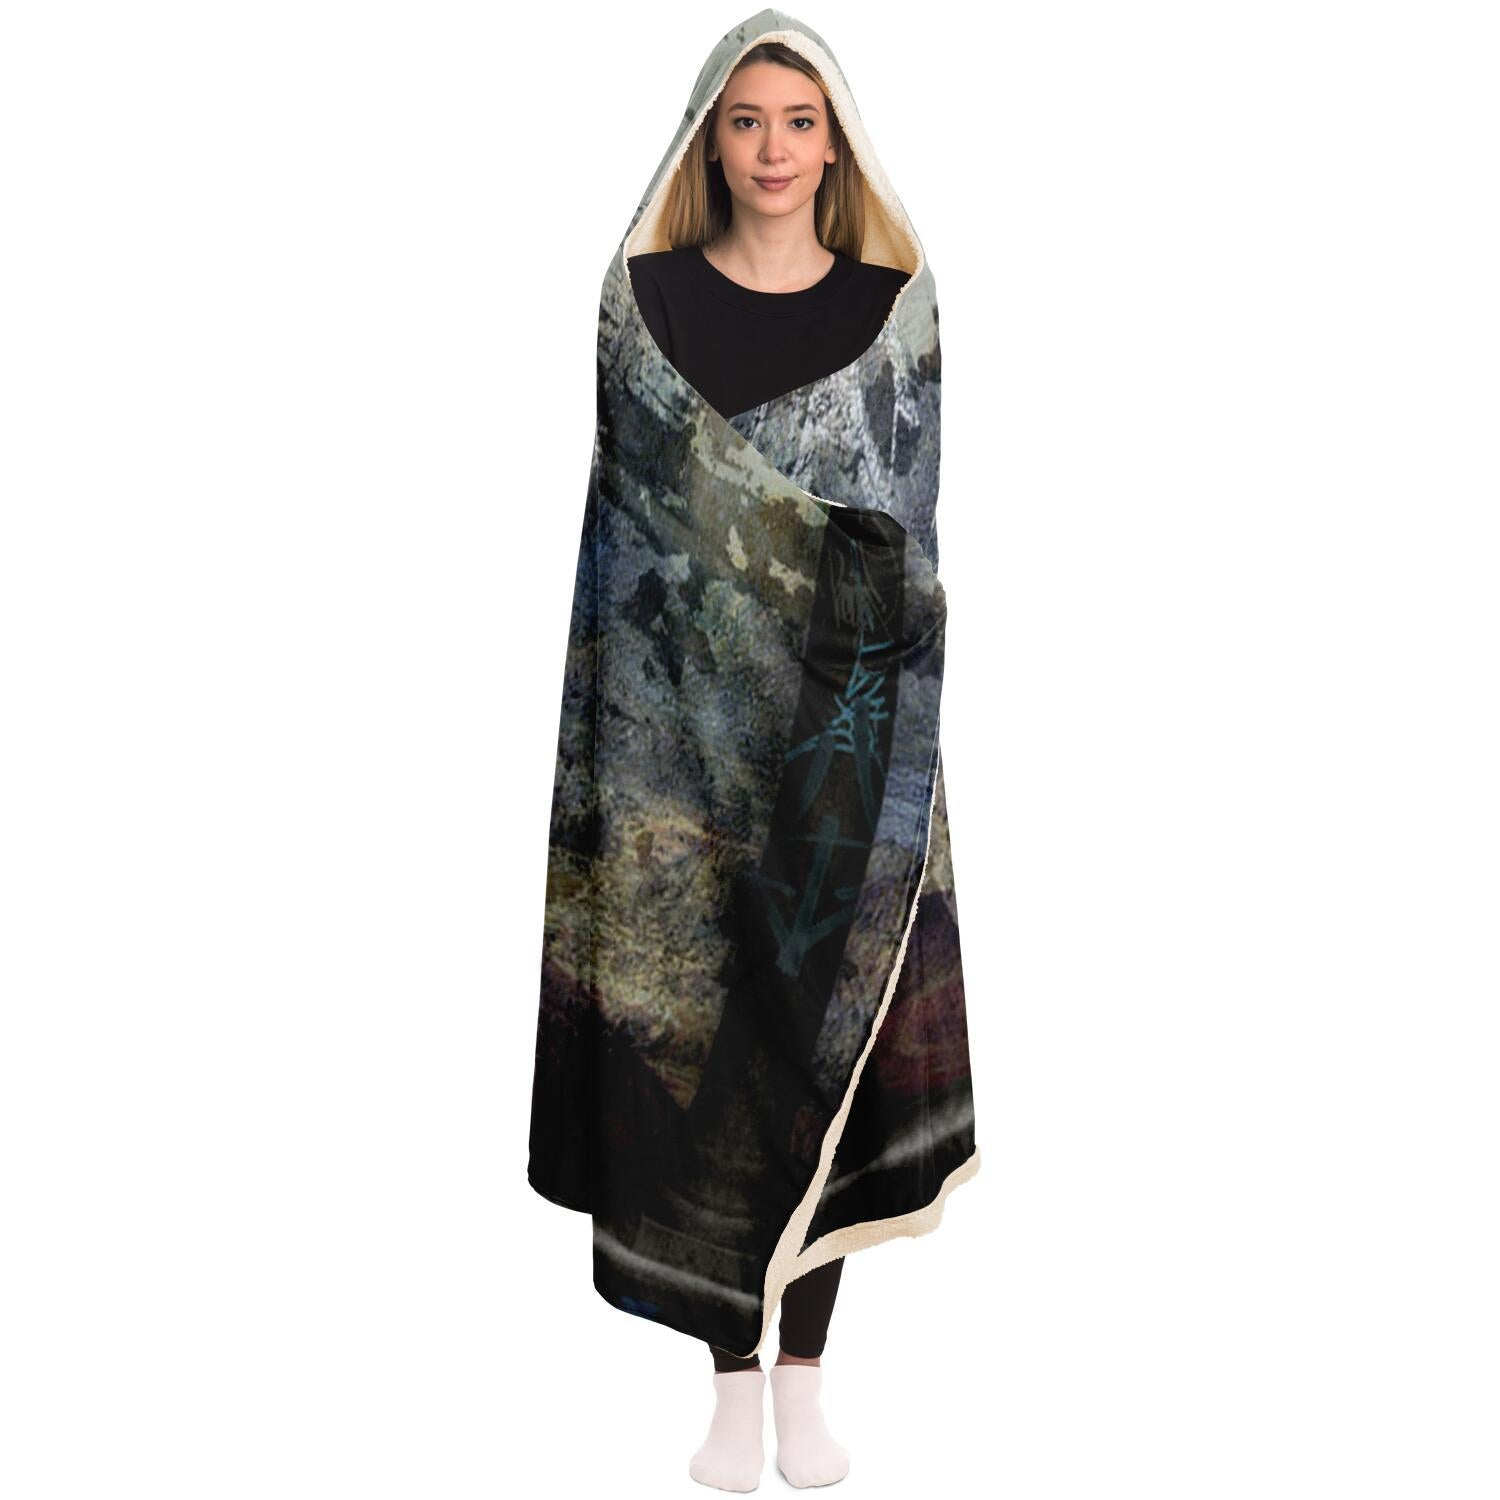 Gioconda Hooded Blanket